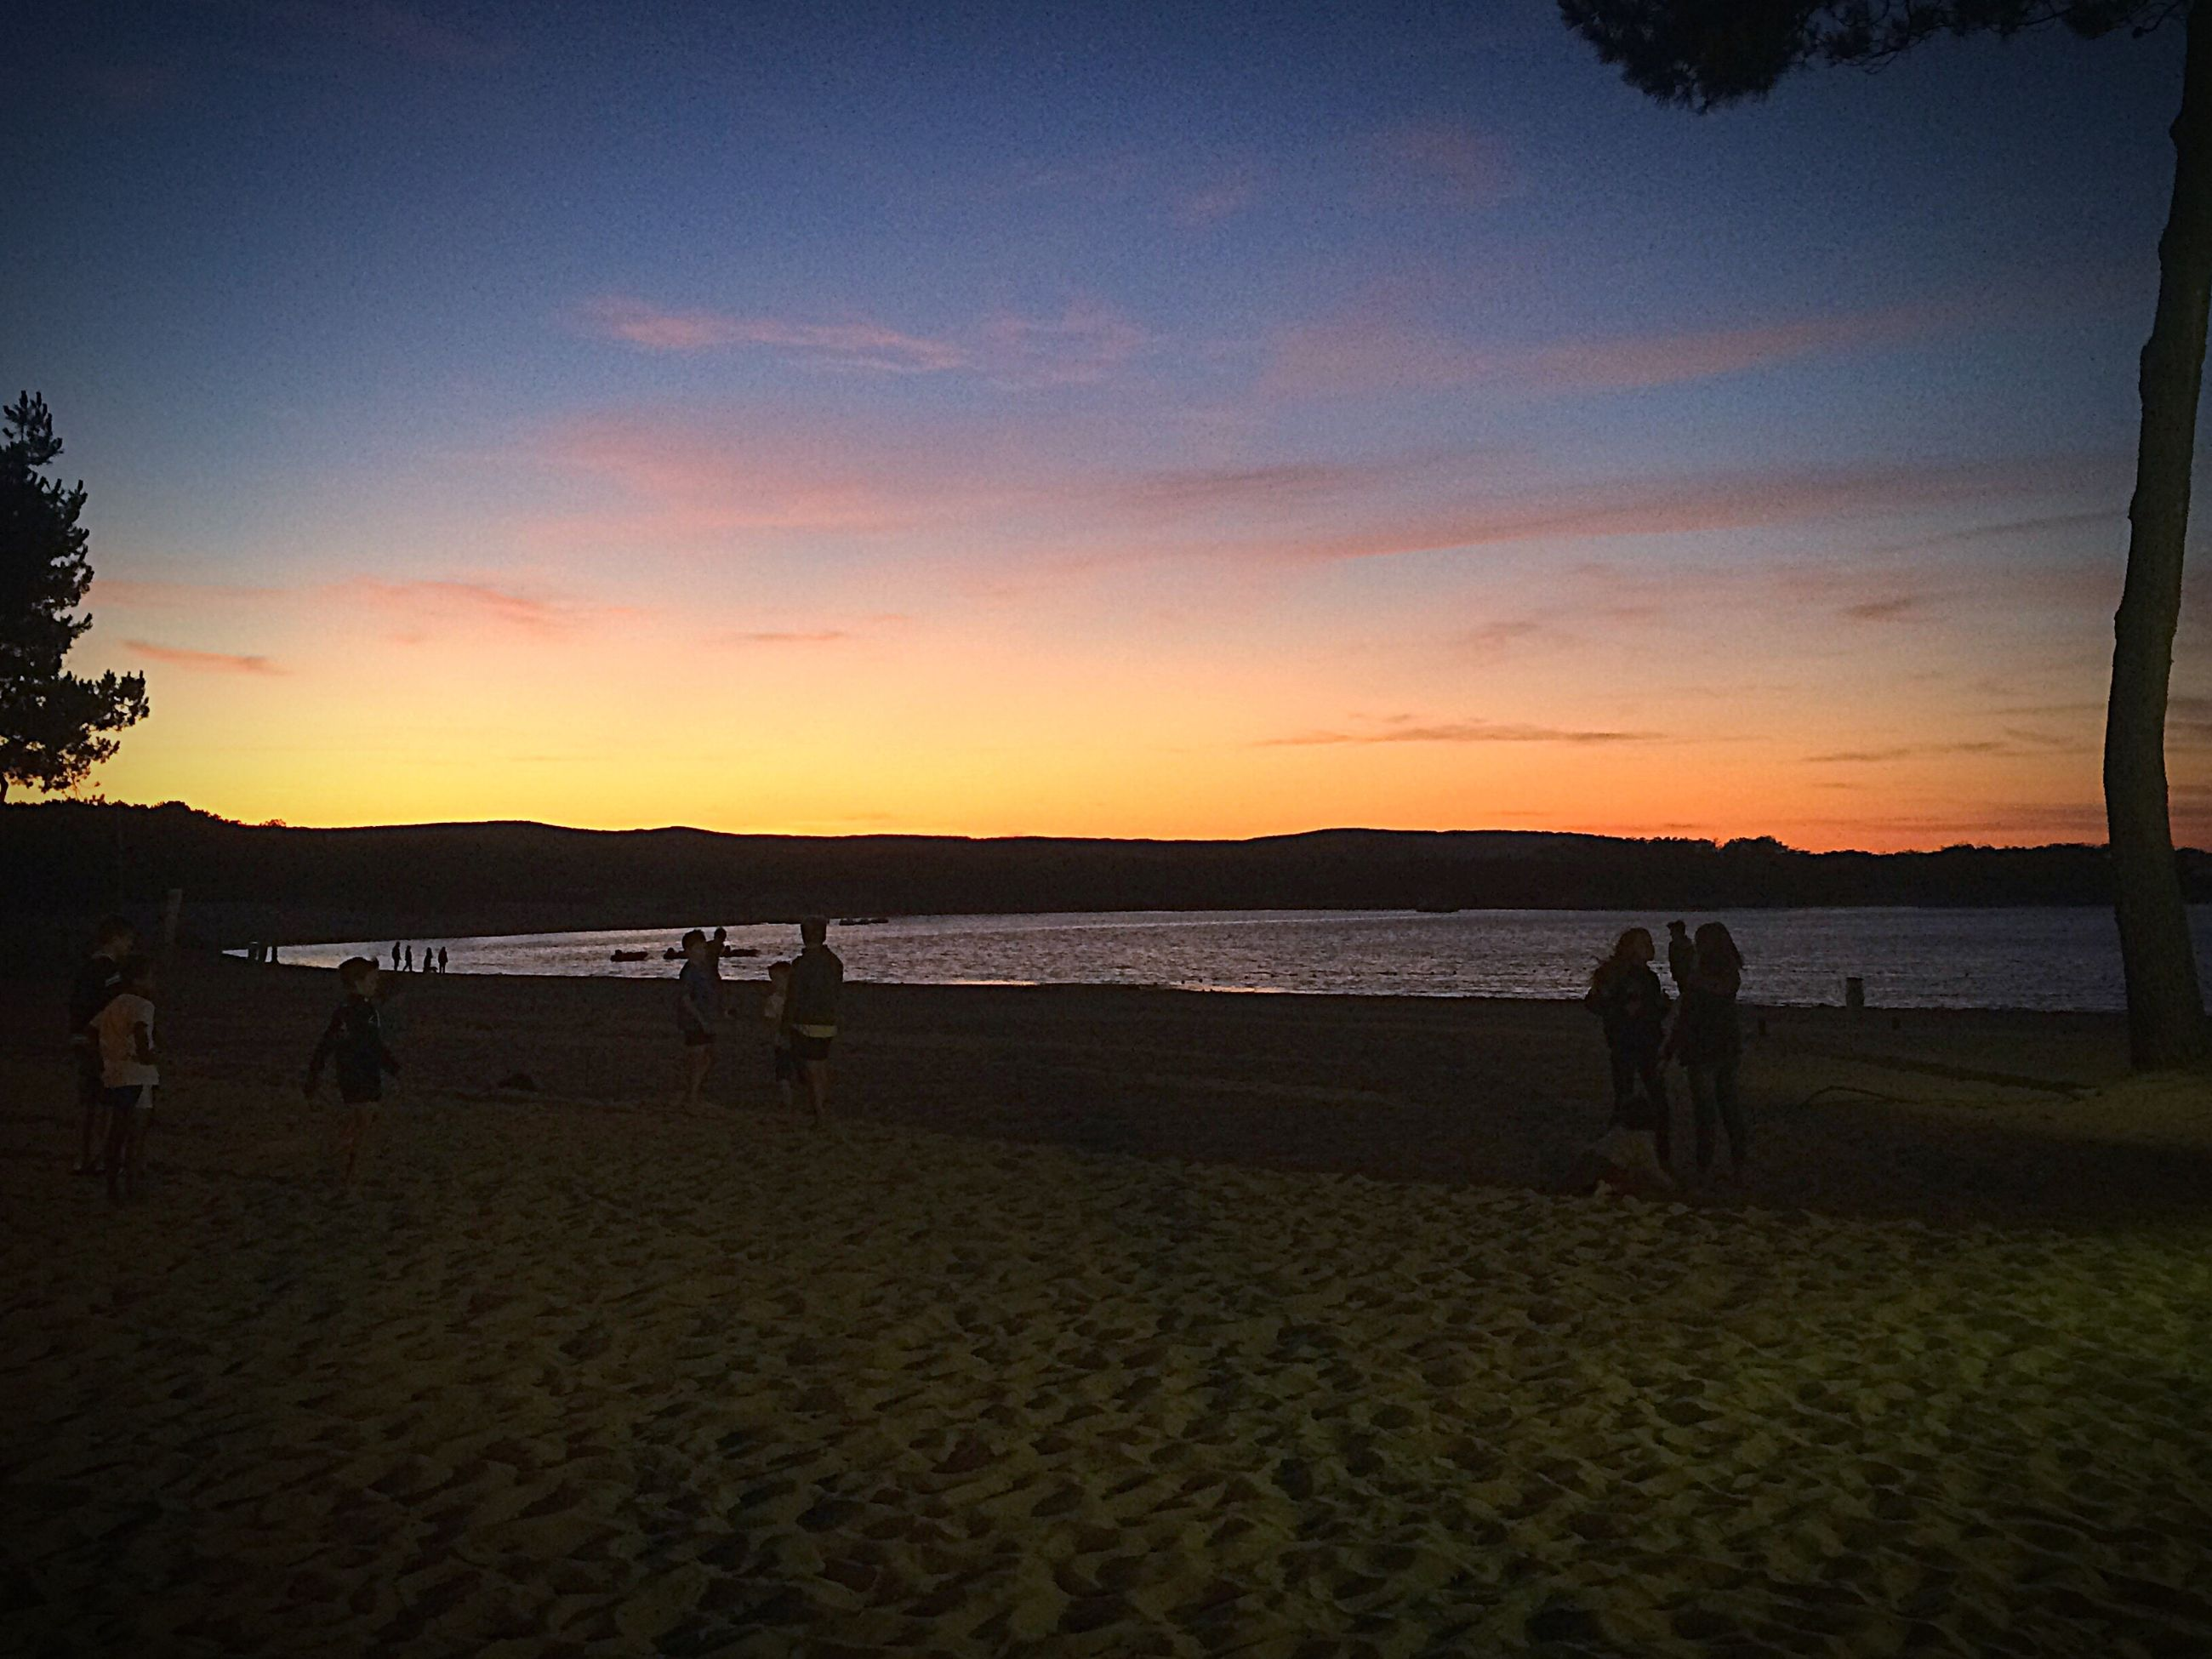 sunset, beach, scenics, tranquil scene, tranquility, sand, water, vacations, sky, incidental people, beauty in nature, idyllic, tourism, nature, tourist, travel destinations, cloud - sky, shore, sea, orange color, non-urban scene, outdoors, majestic, mountain, calm, remote, dramatic sky, atmospheric mood